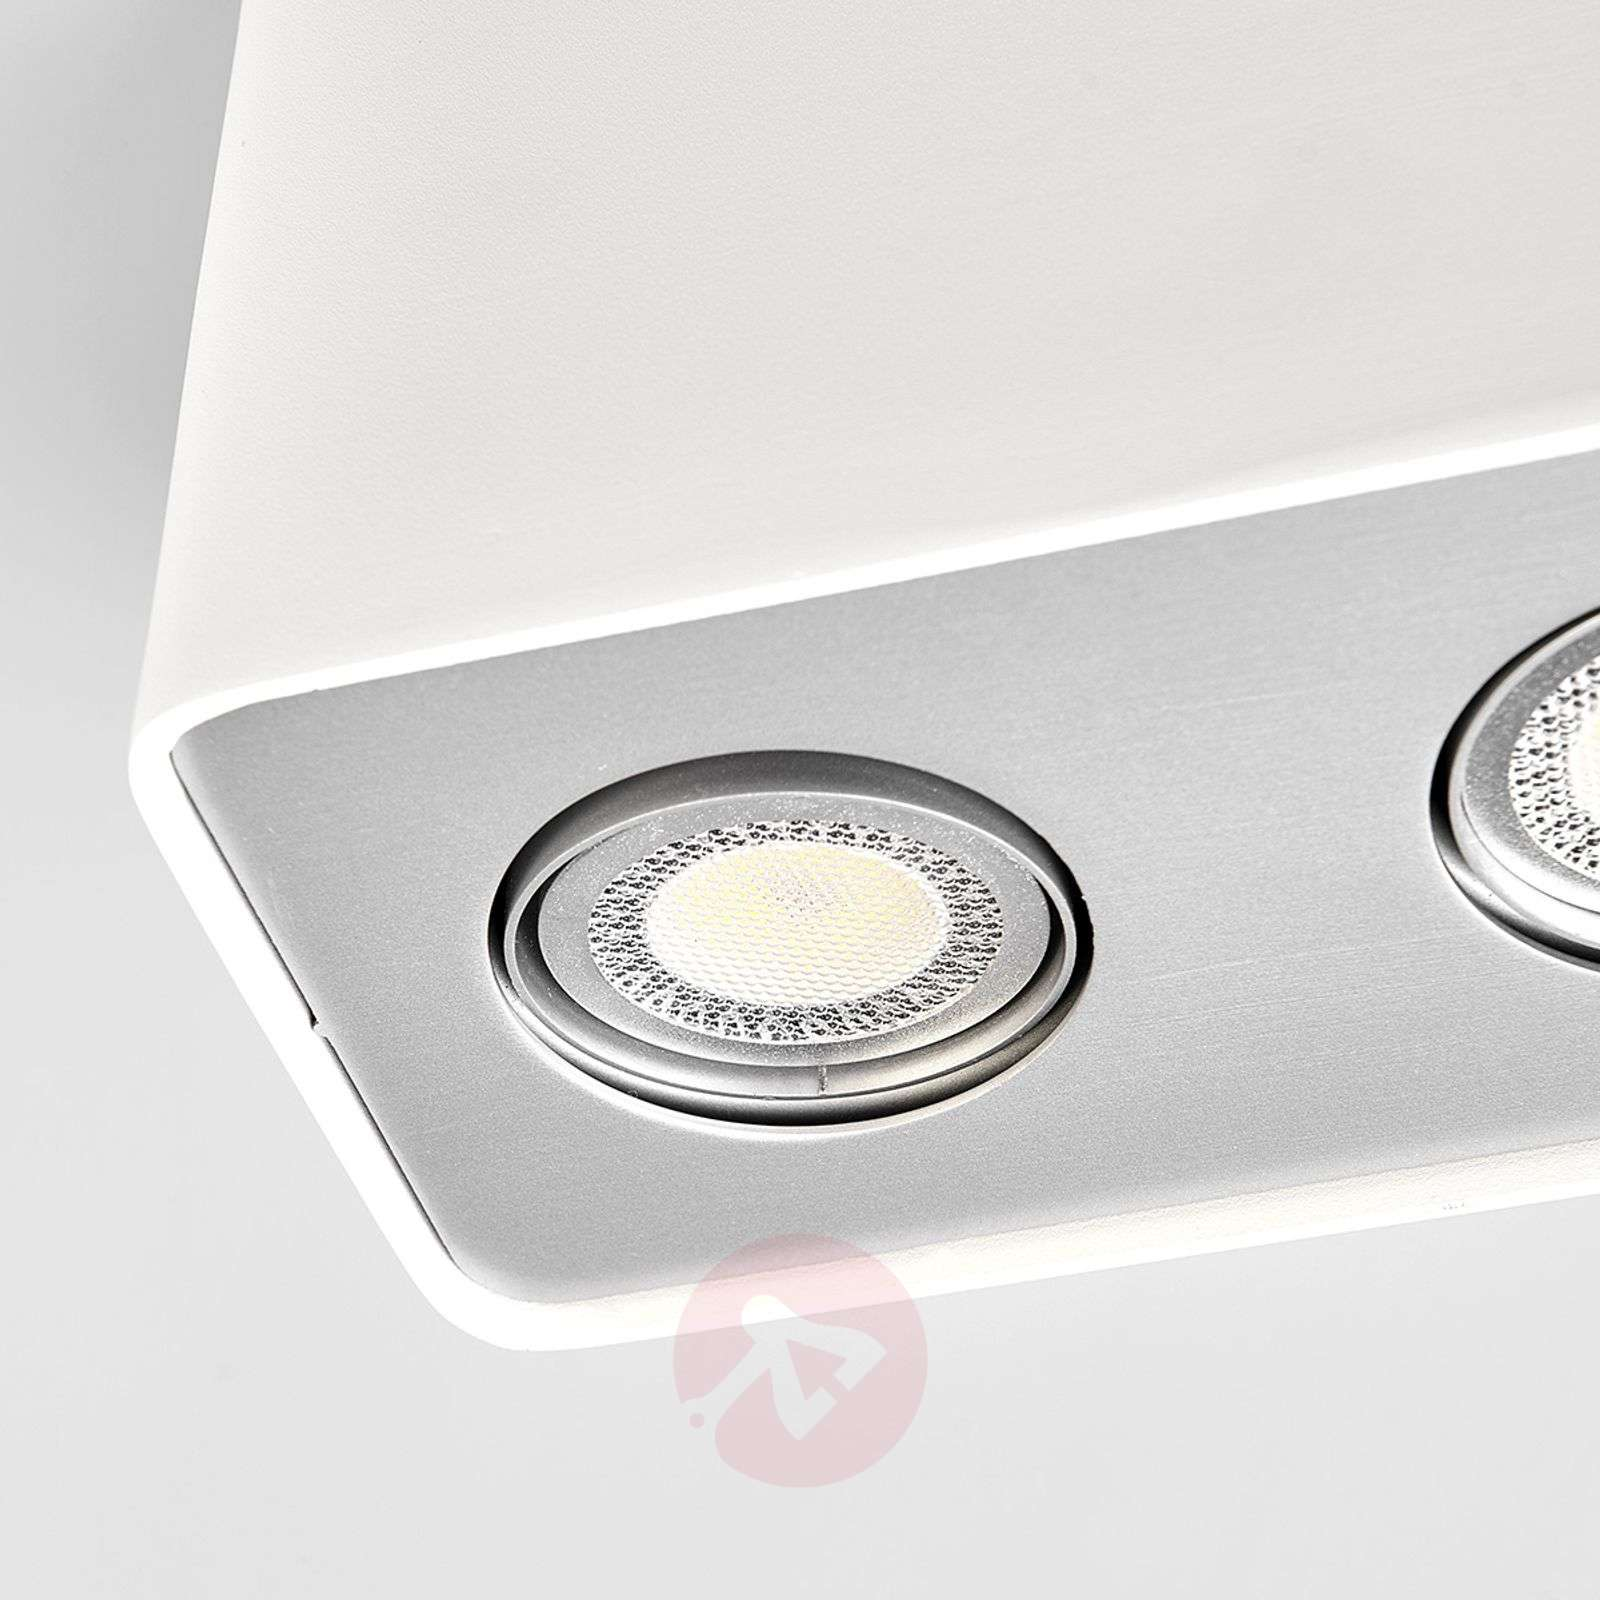 GU10 LED downlight Gilian 3 luci, angolare bianco-9975007-01